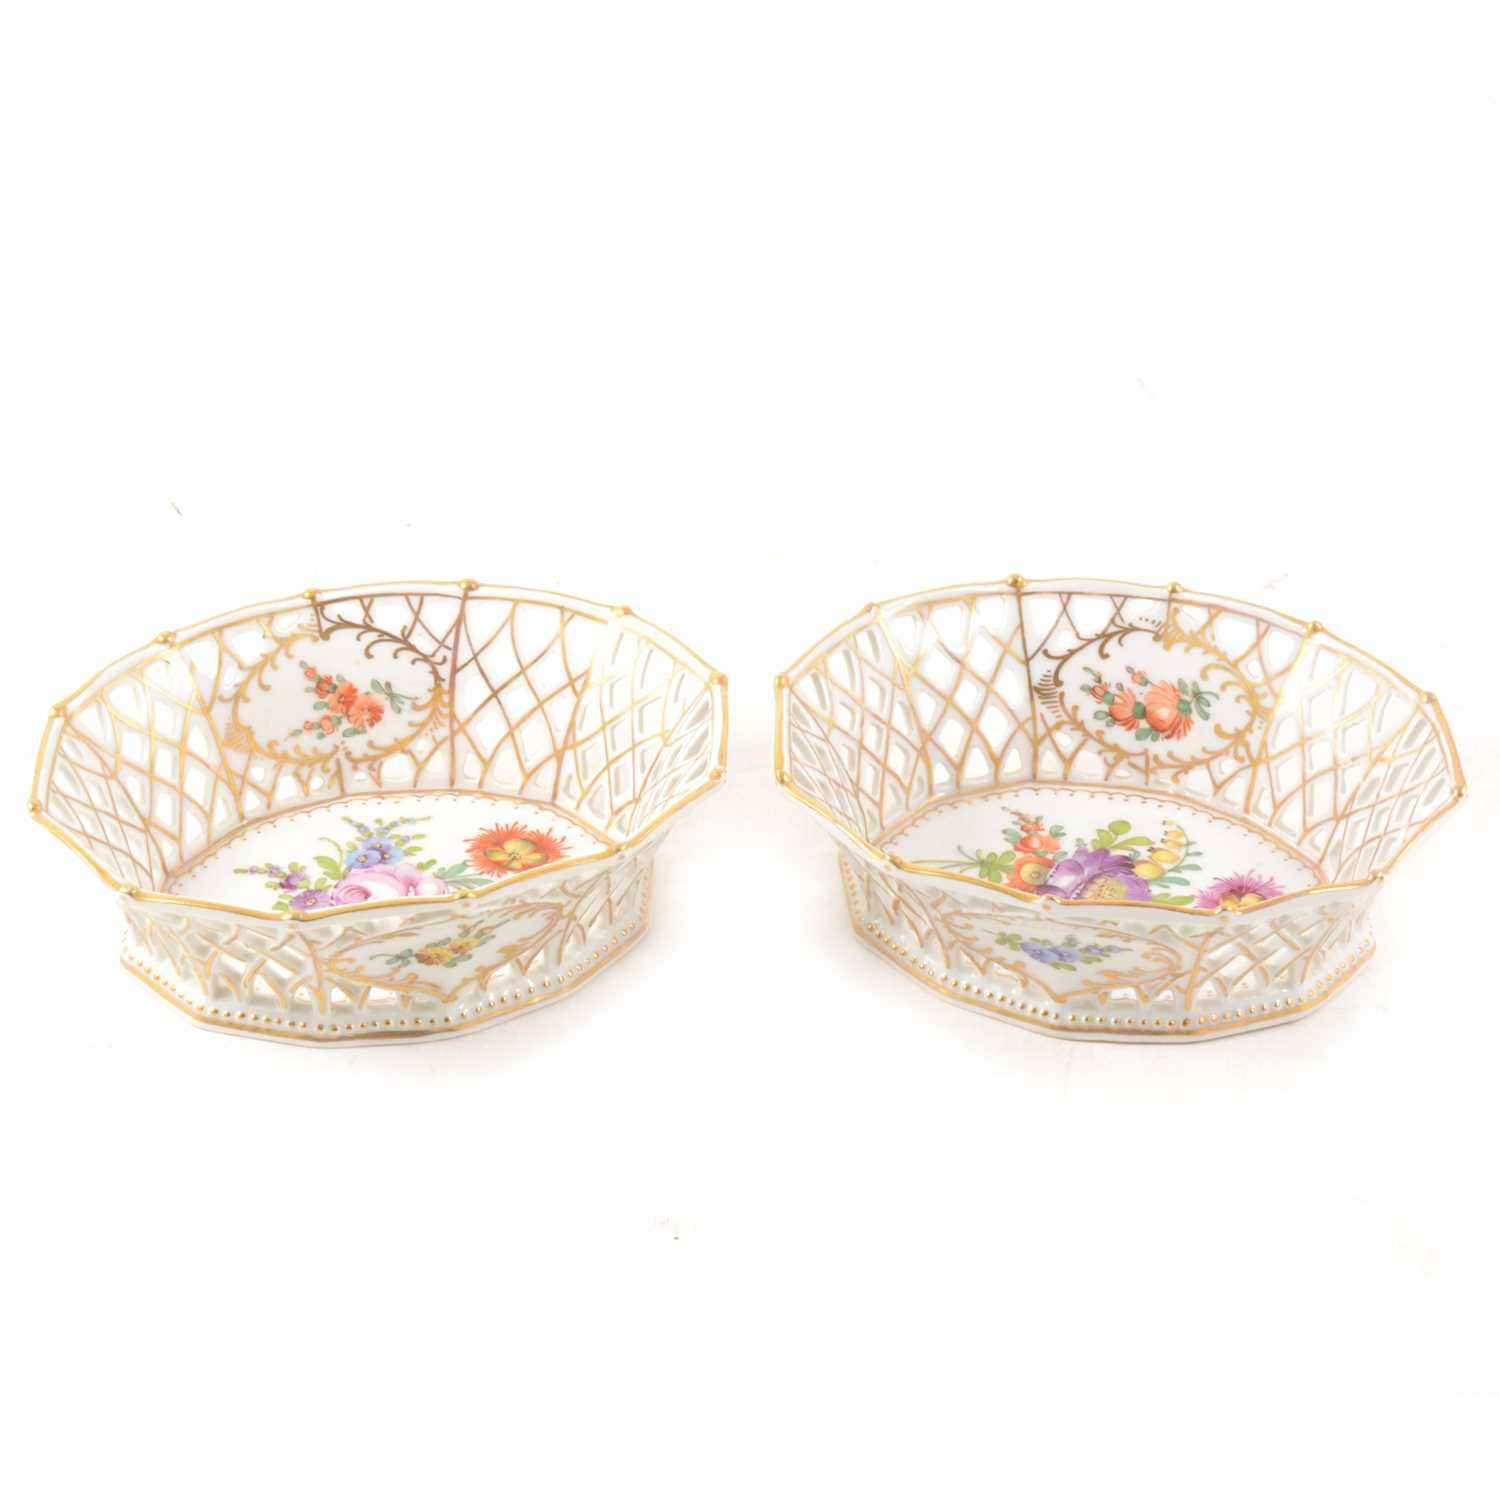 Lot 3-A pair of Dresden porcelain baskets